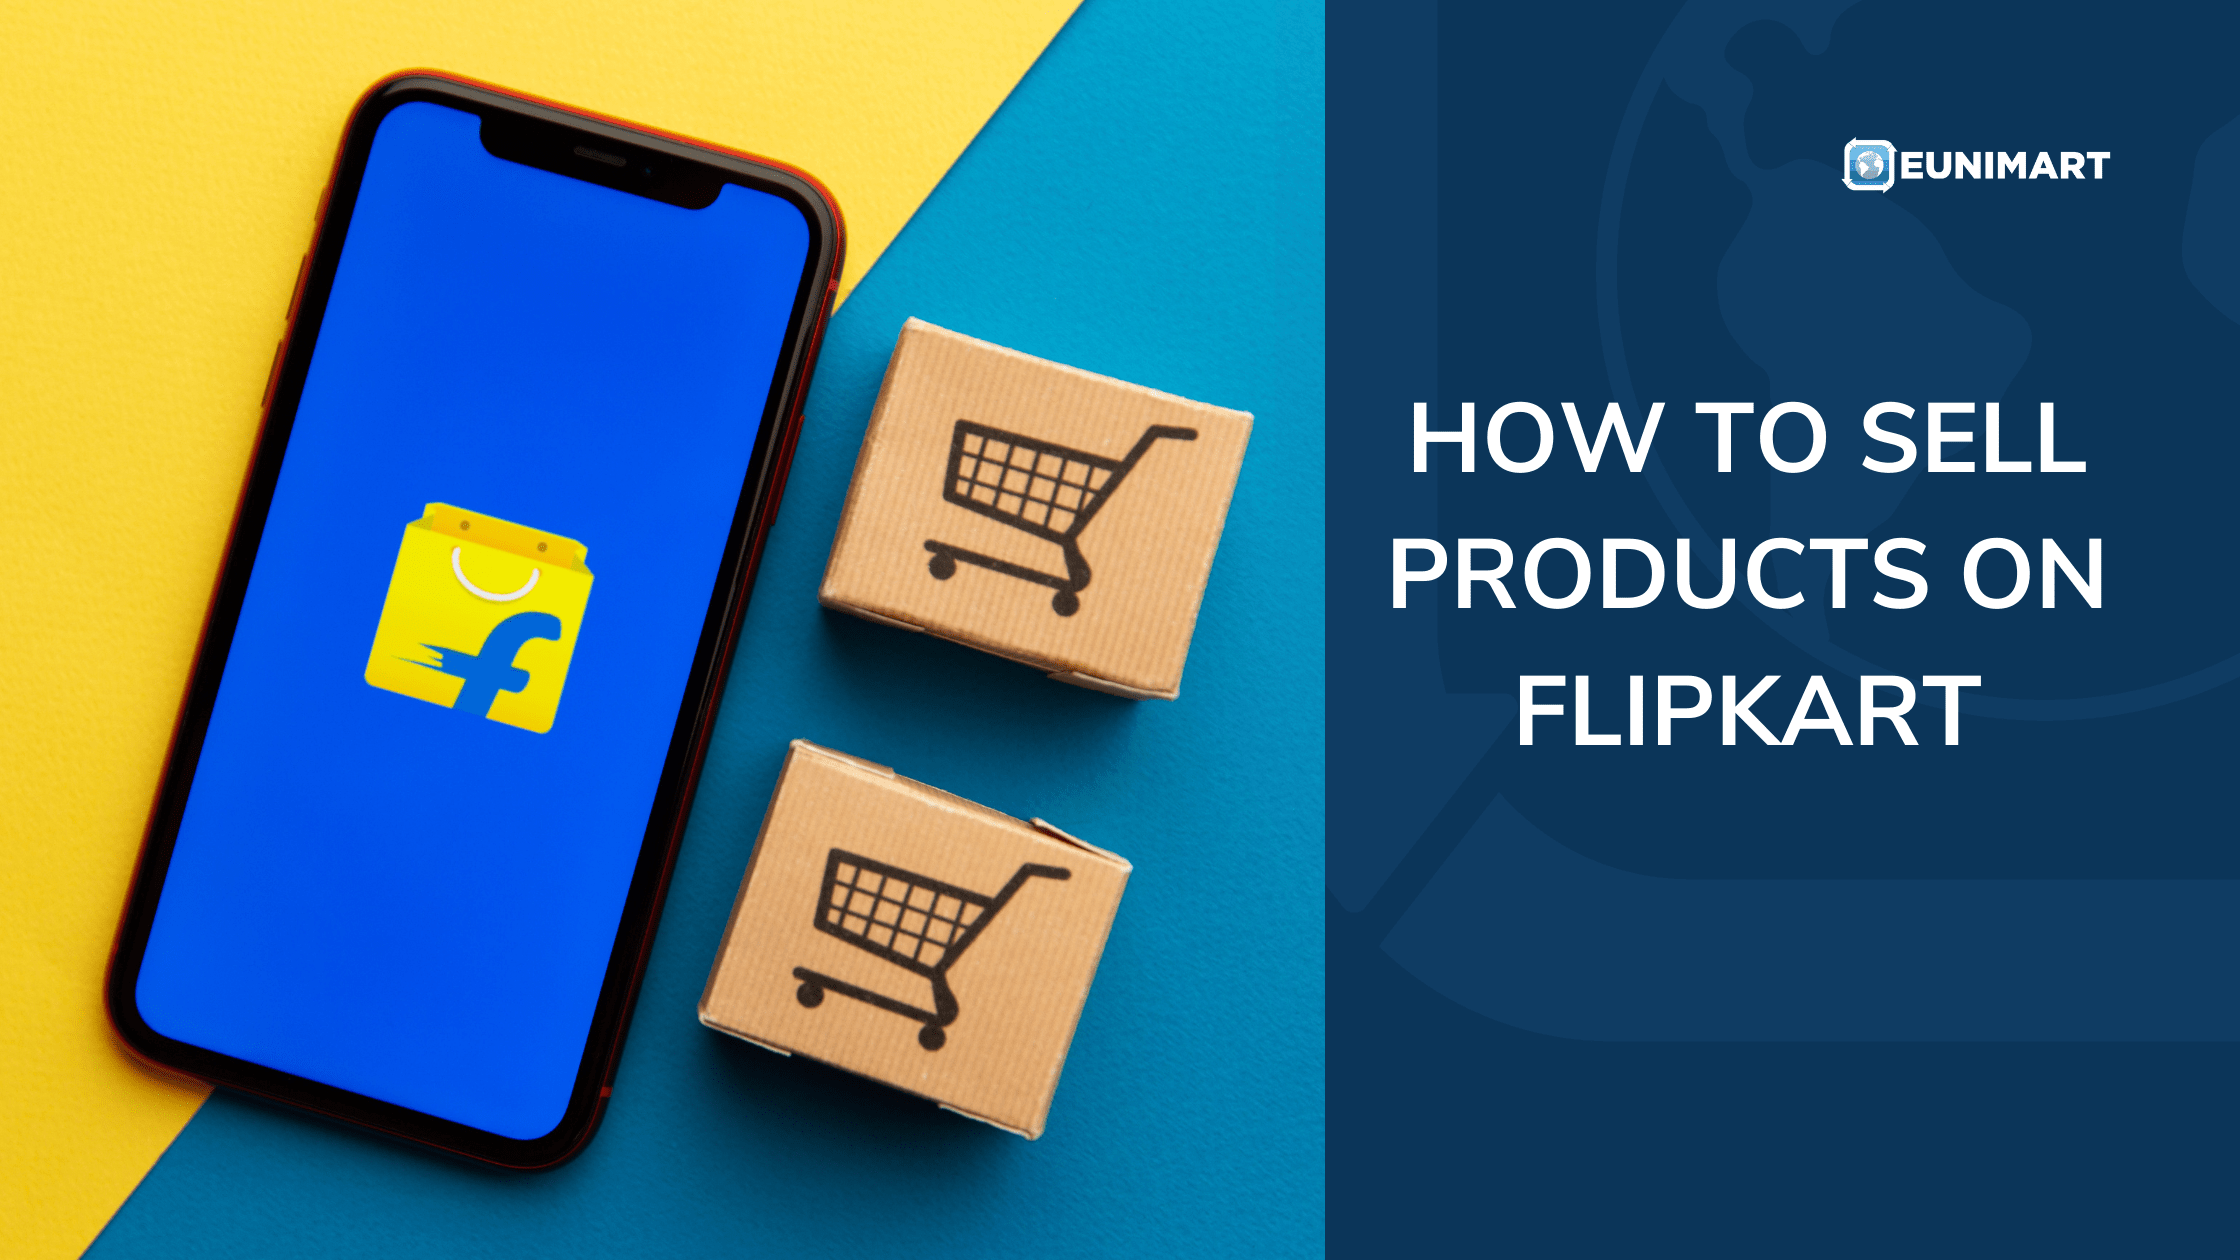 How to sell products on Flipkart